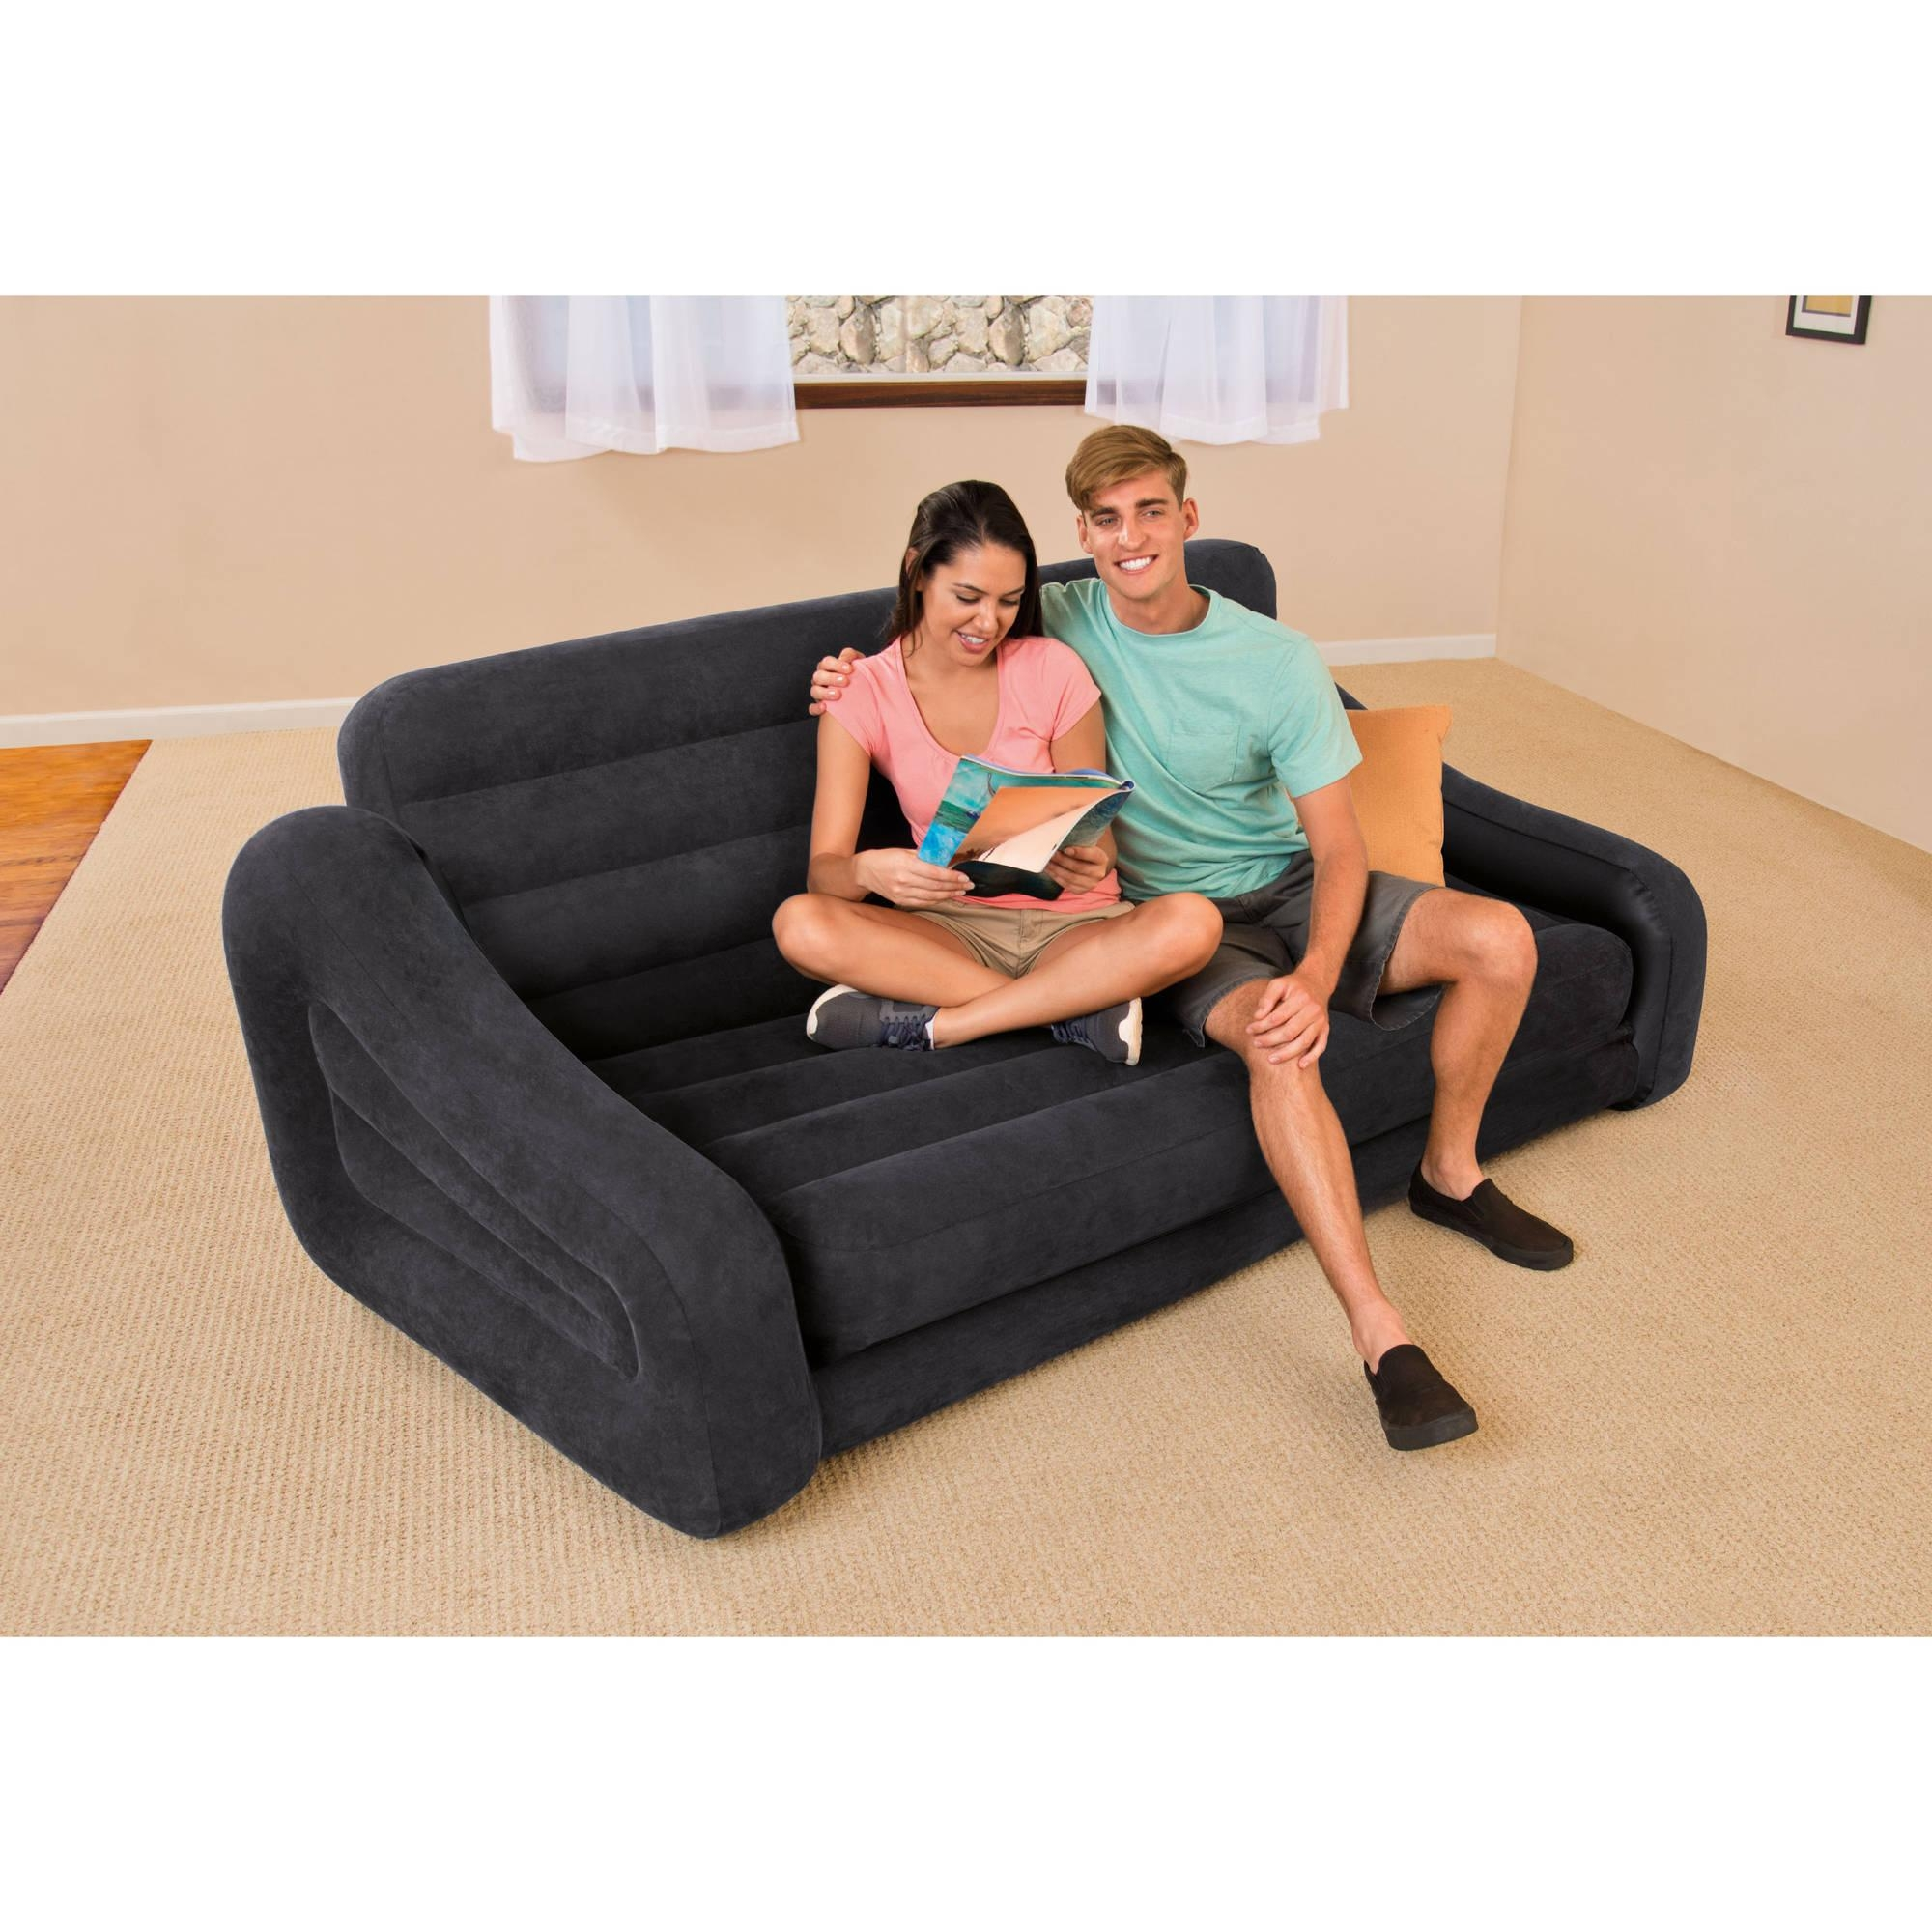 Intex Queen Inflatable Pull Out Sofa Bed – Walmart For Fold Up Sofa Chairs (View 20 of 22)